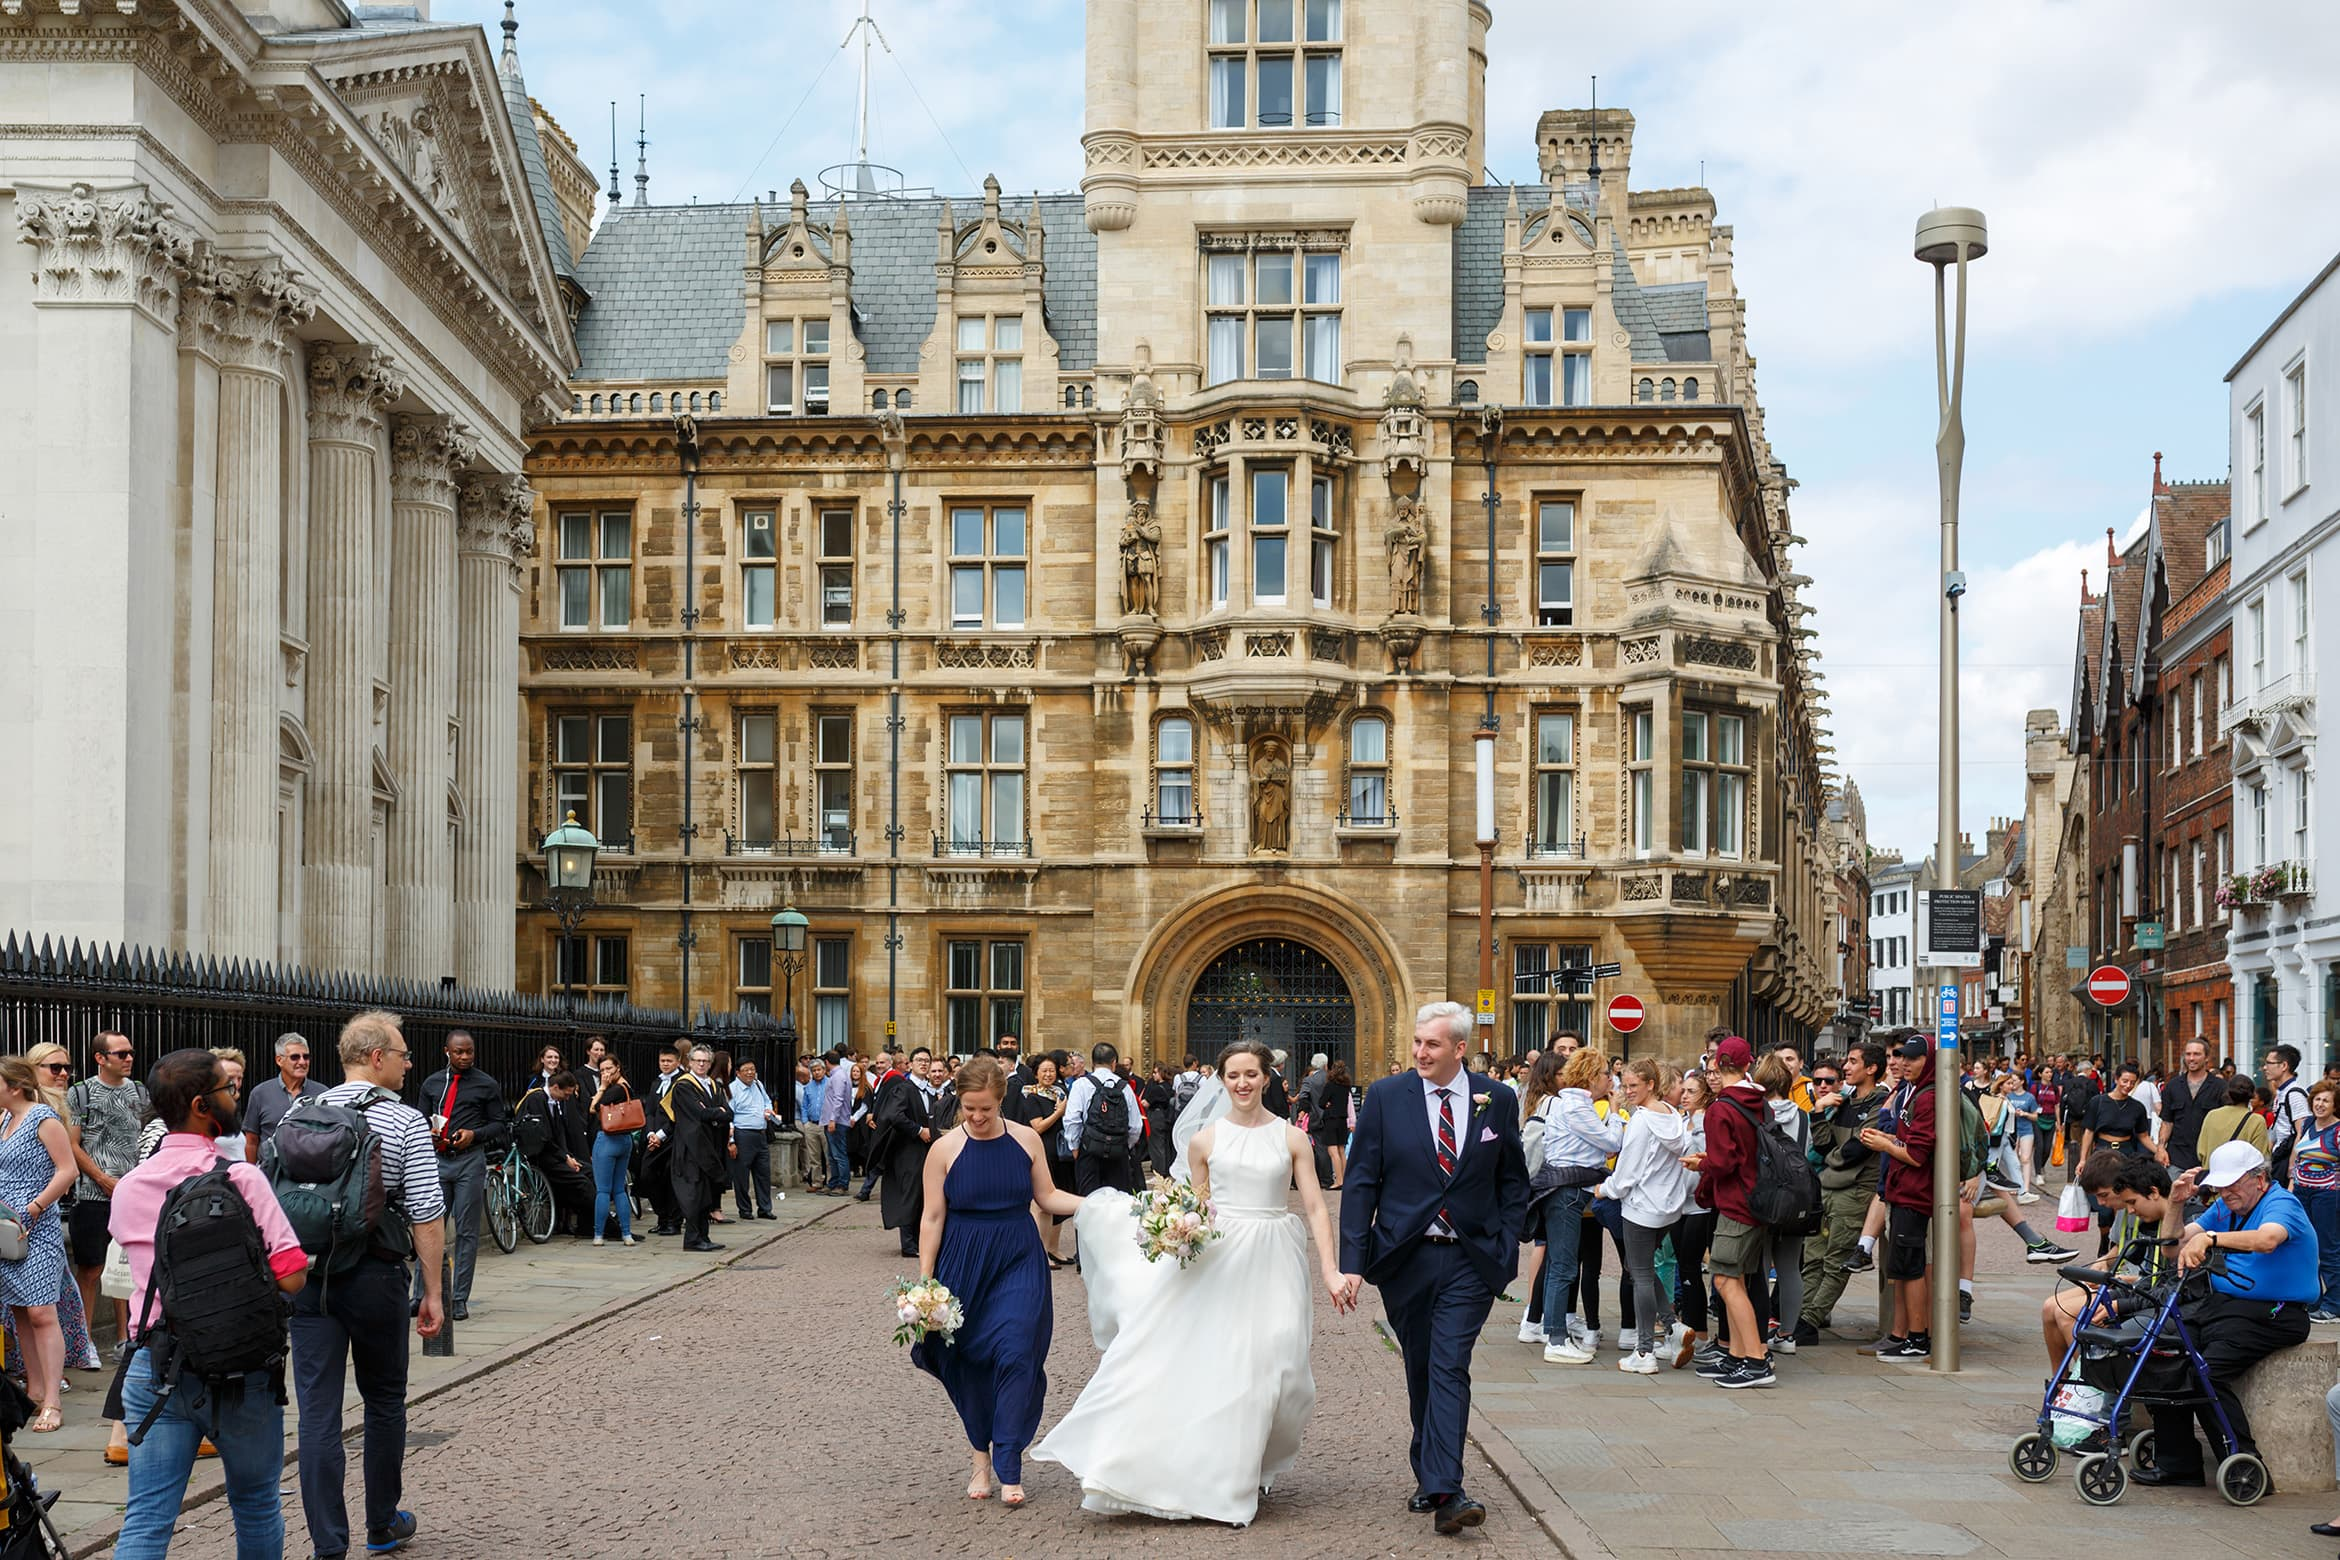 walking through the streets of cambridge on their wedding day